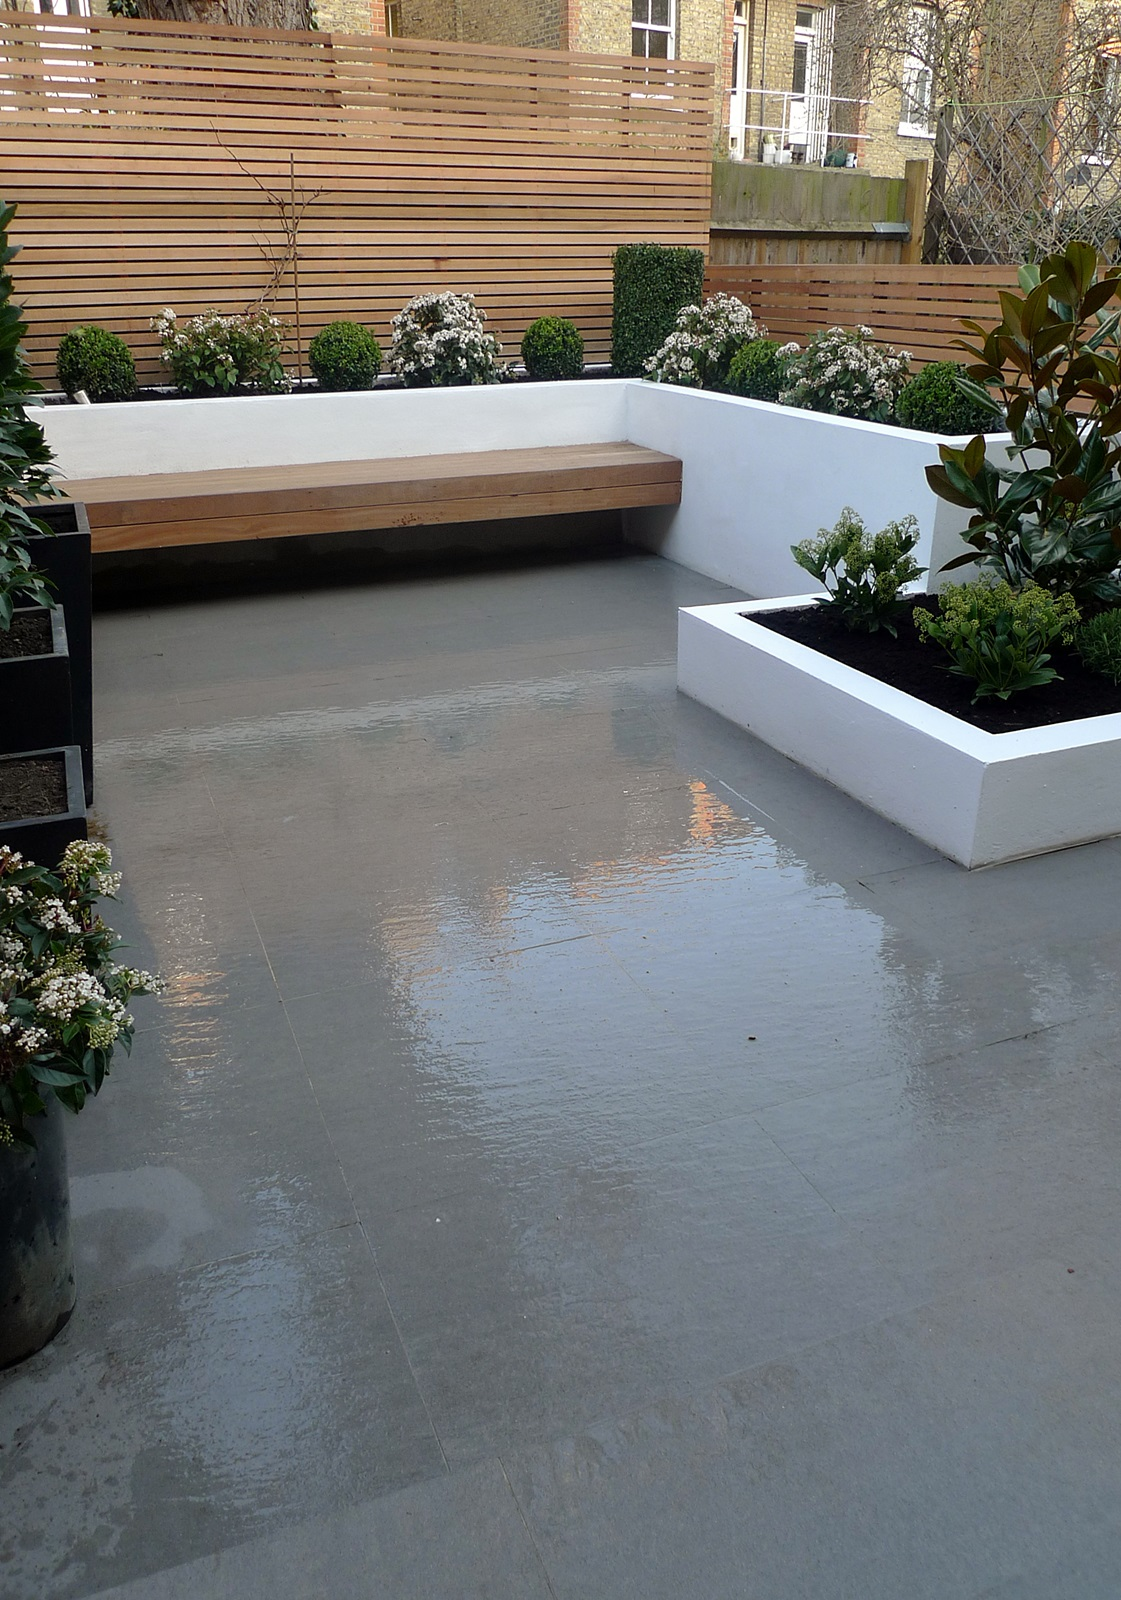 Garden design designer clapham balham battersea small low maintenance modern garden (20)